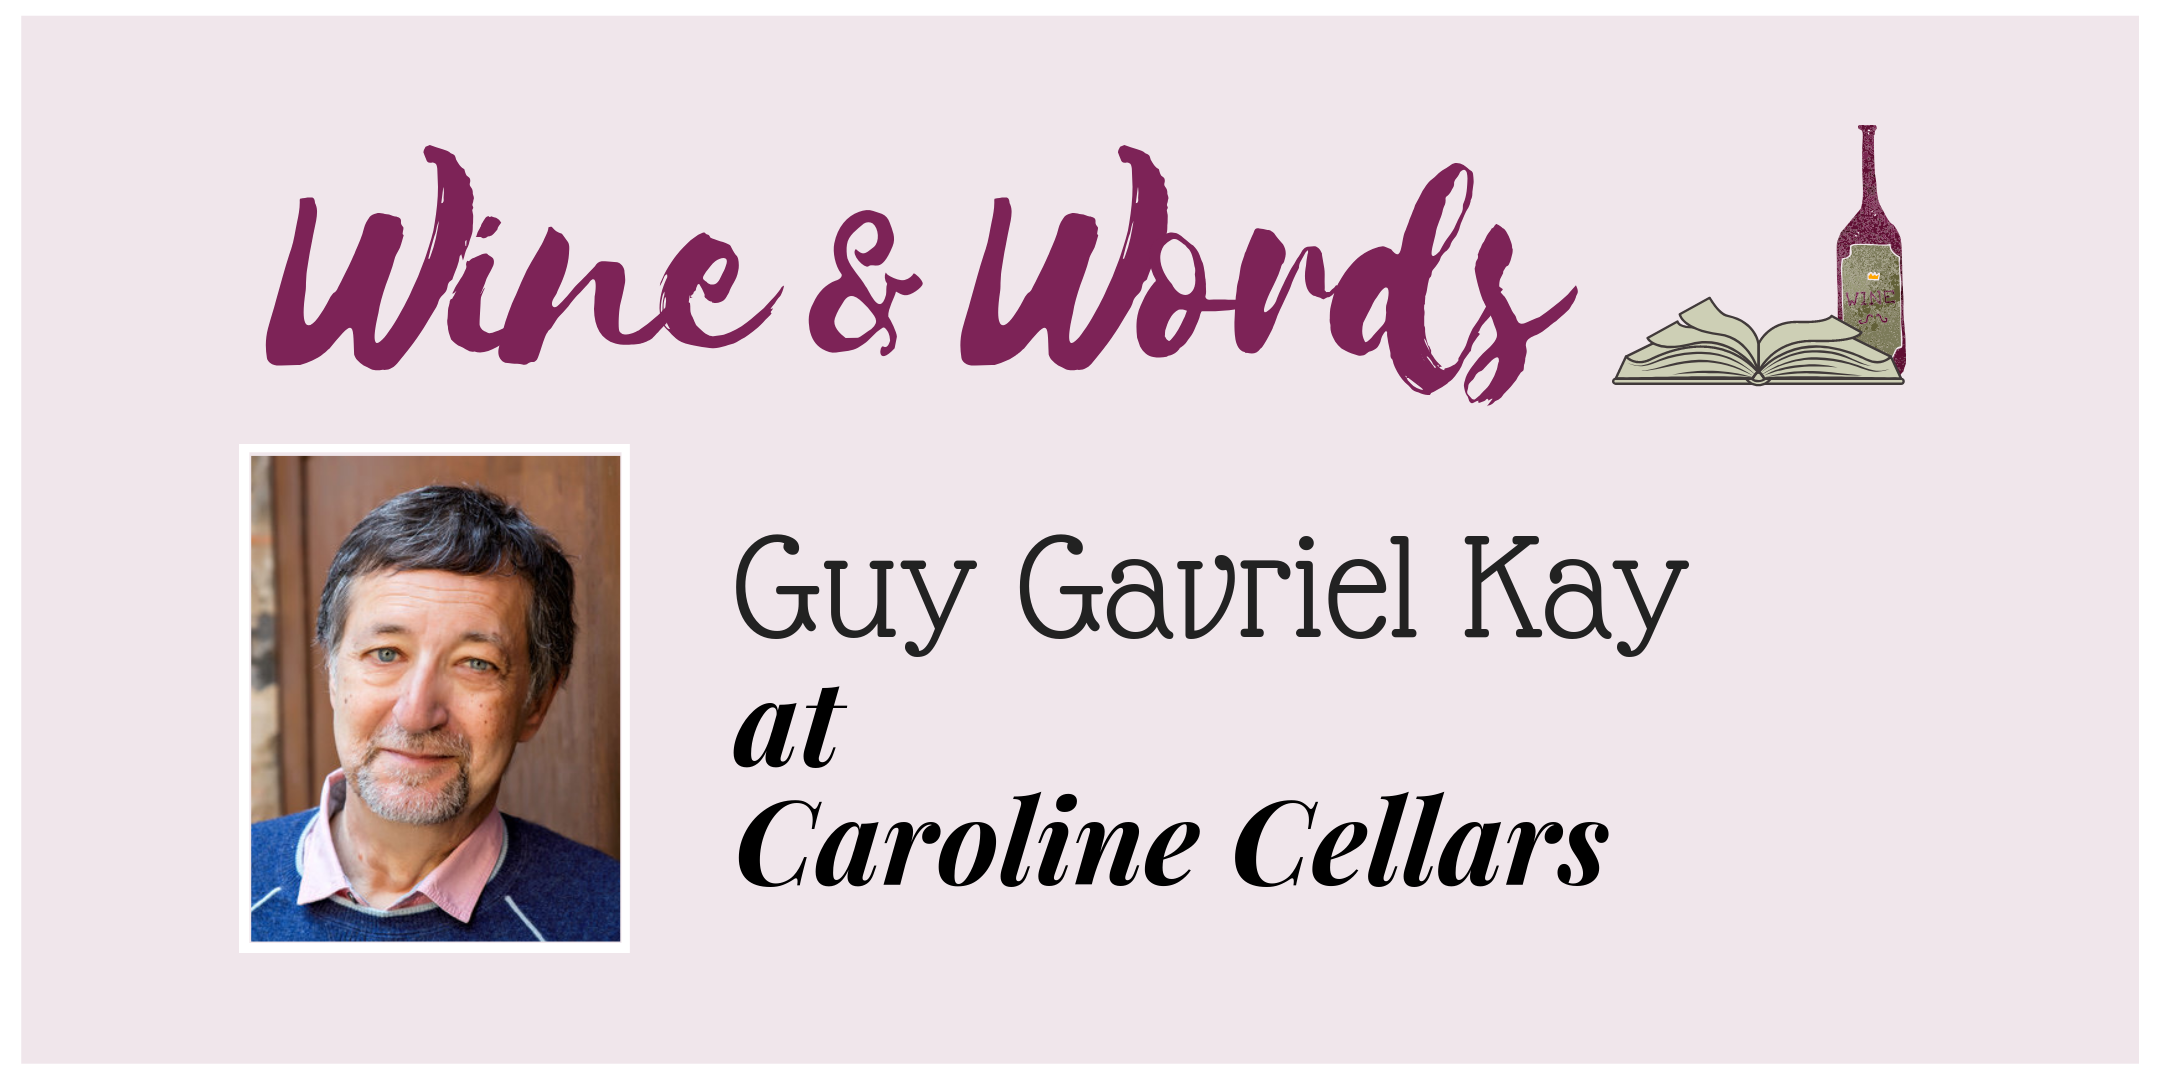 guy gavriel kay at caroline cellars